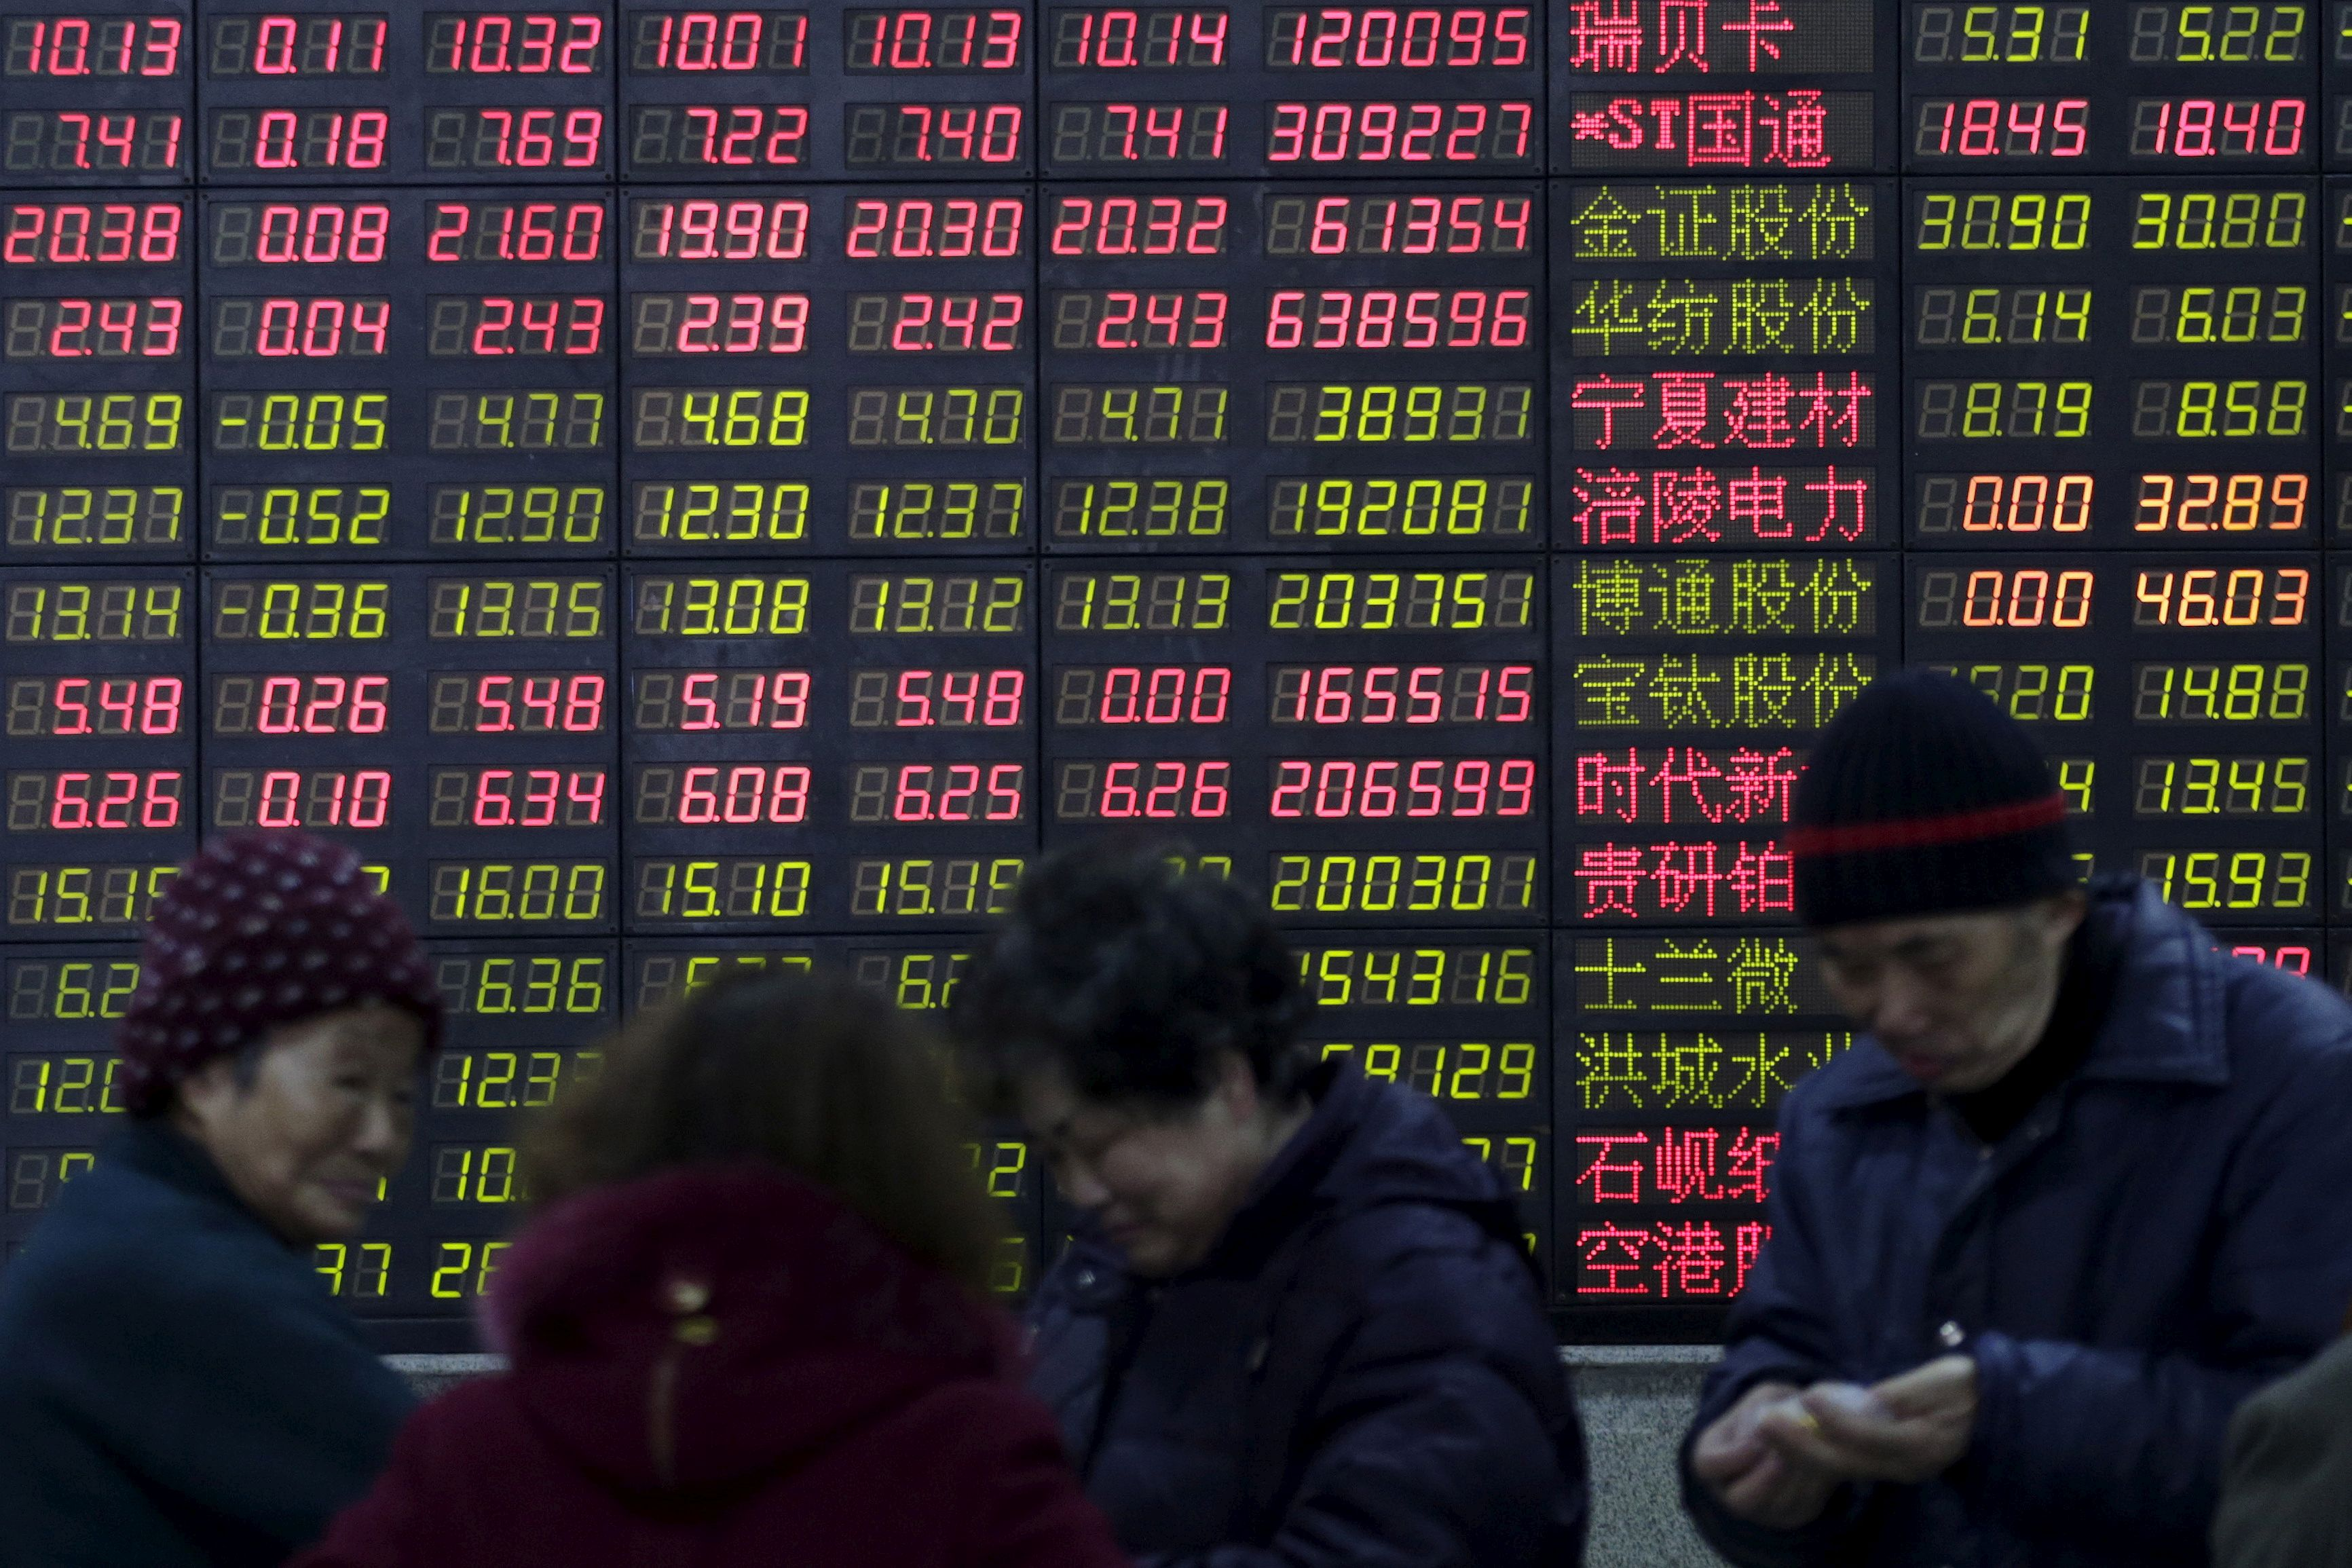 Stock bubble worries push Chinese investors south for bargains